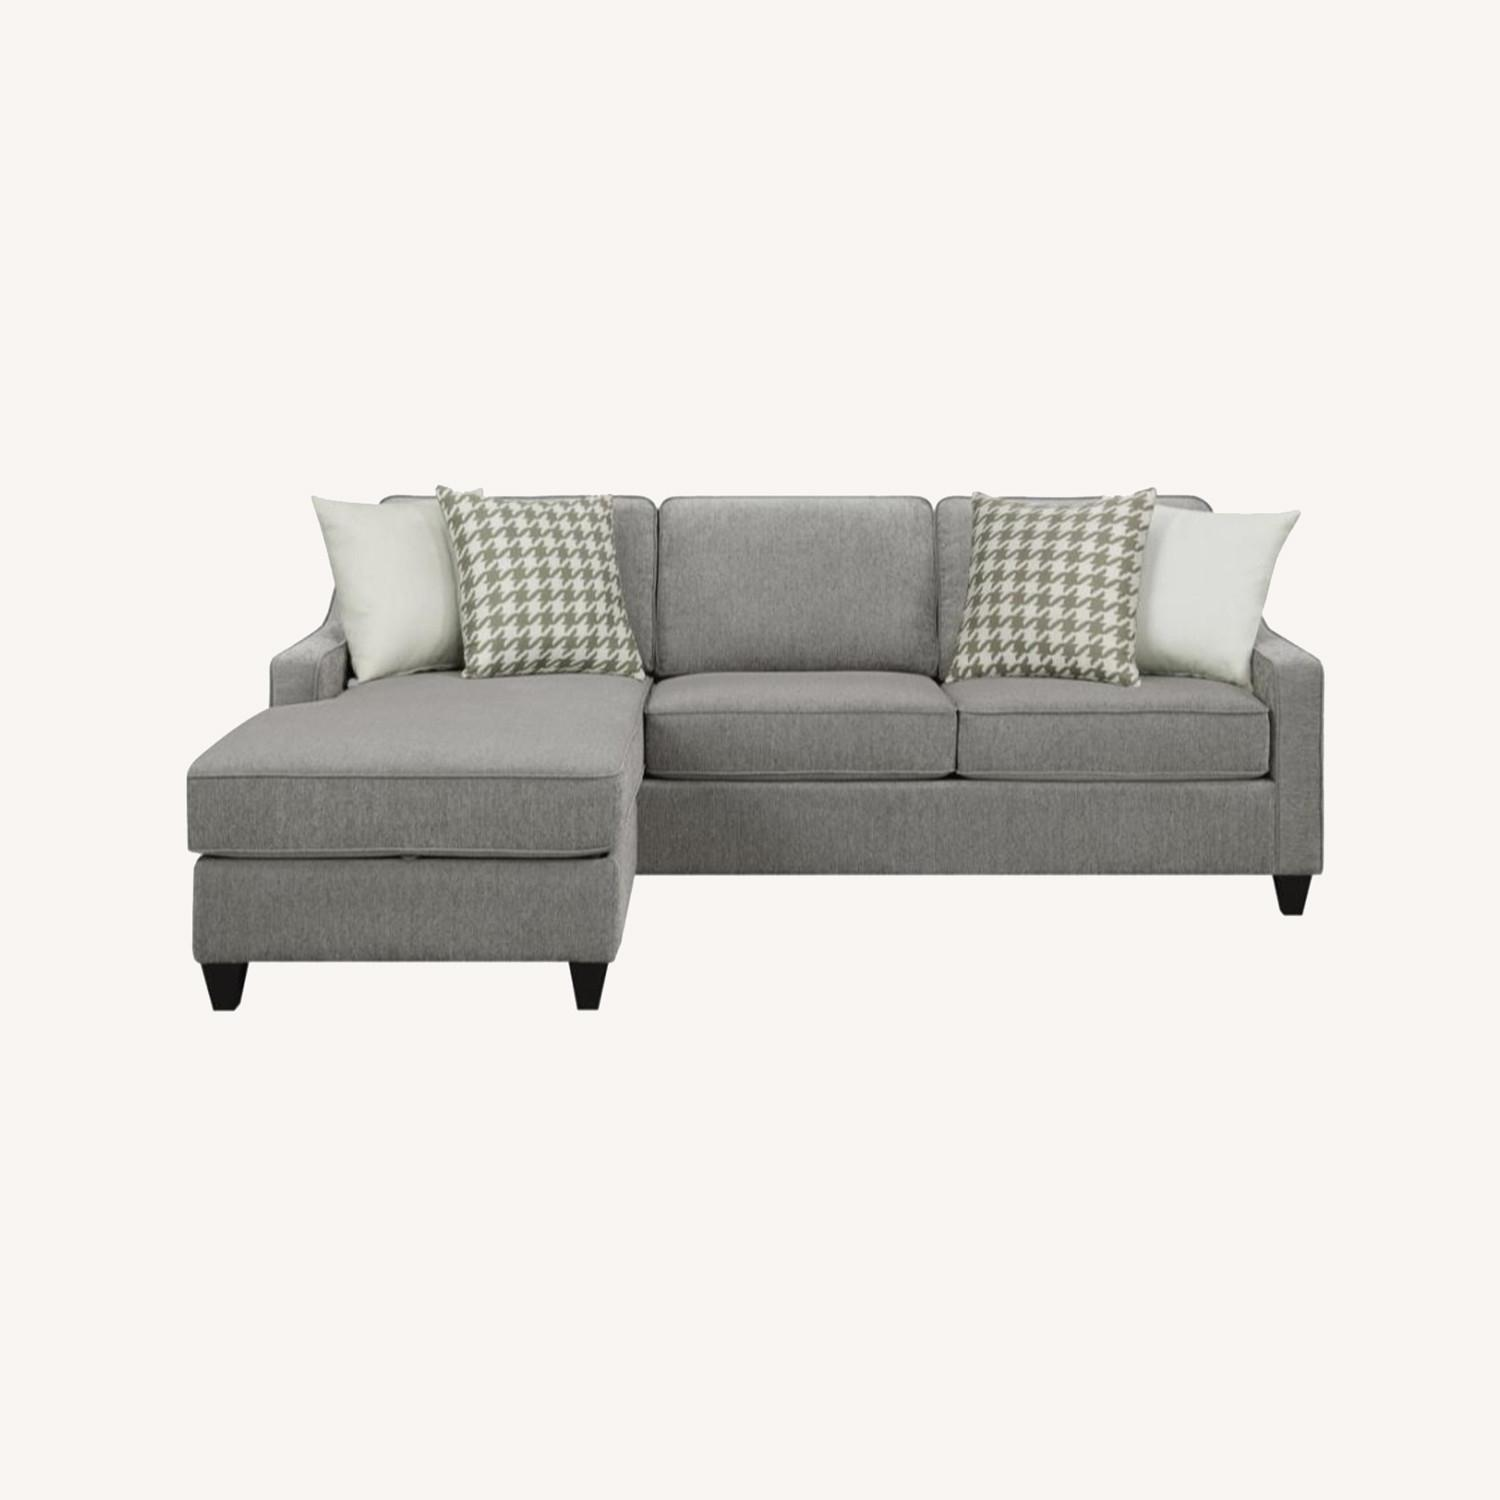 Sectional In Charcoal Chevron Dobby Upholstery - image-14